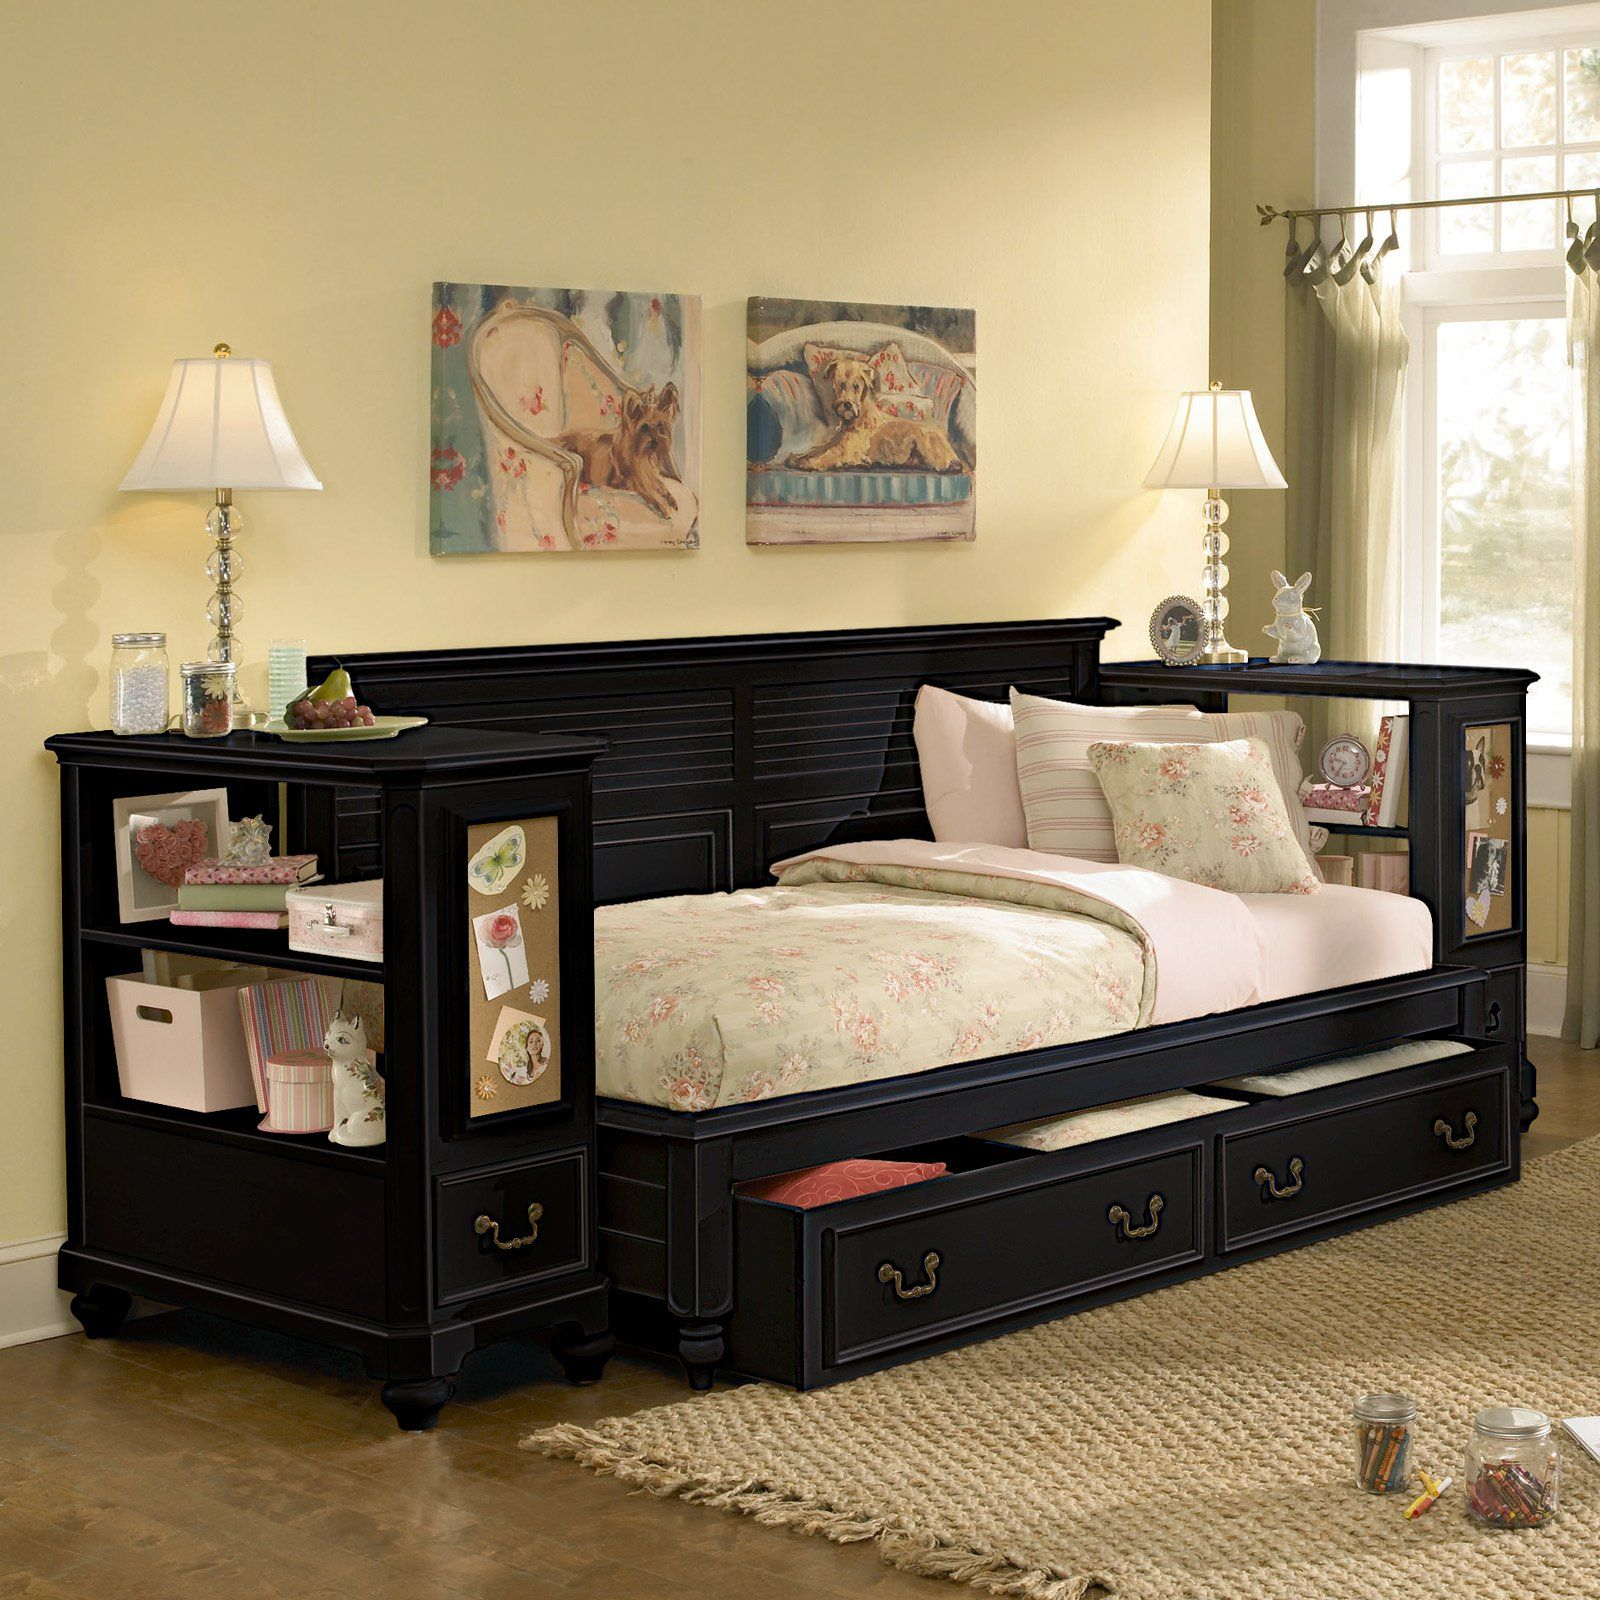 Captivating Full Size Daybed With Trundle For Bedroom Furniture ...